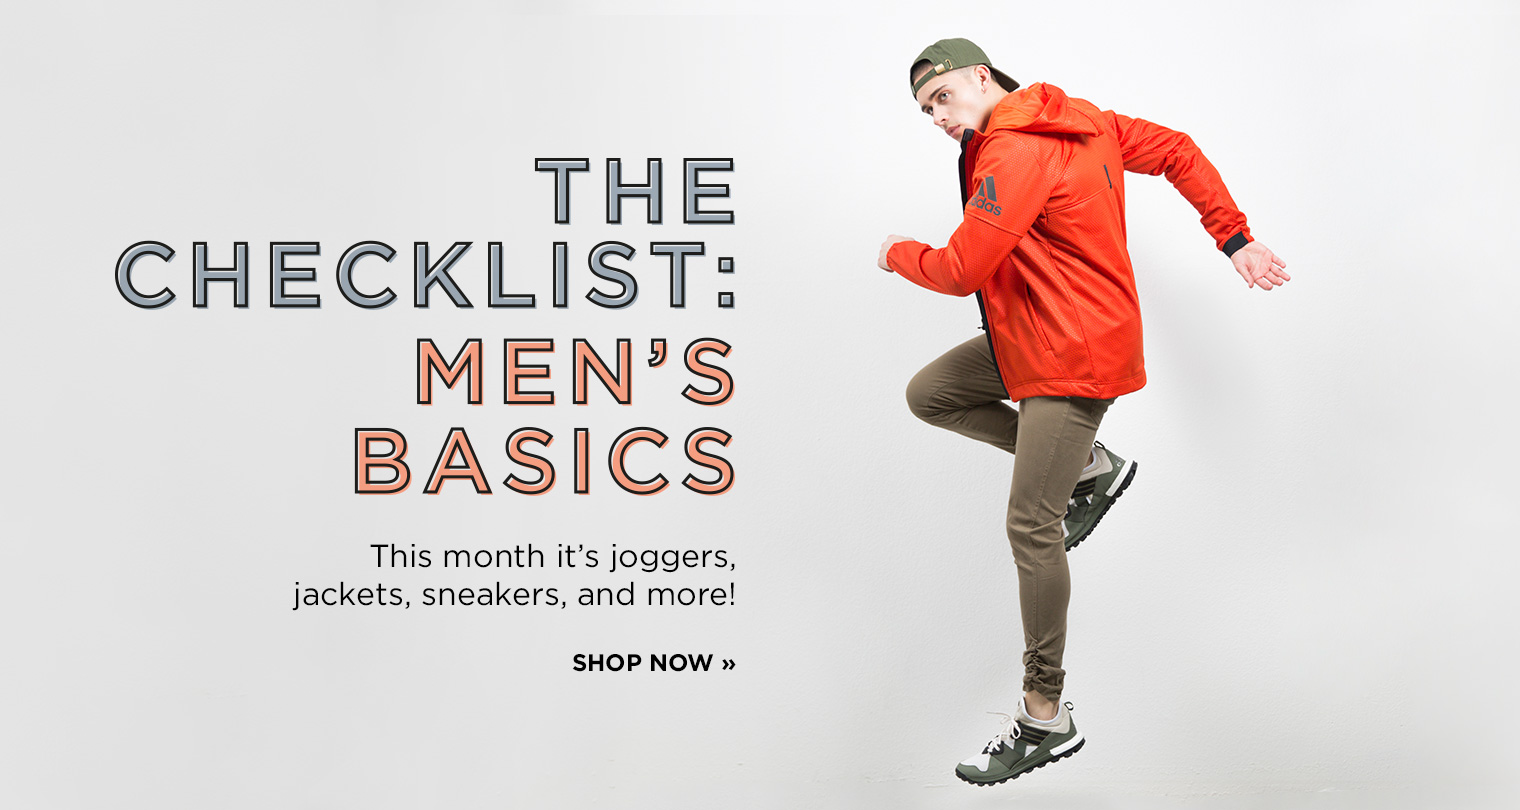 Shop Men's Basics Checklist